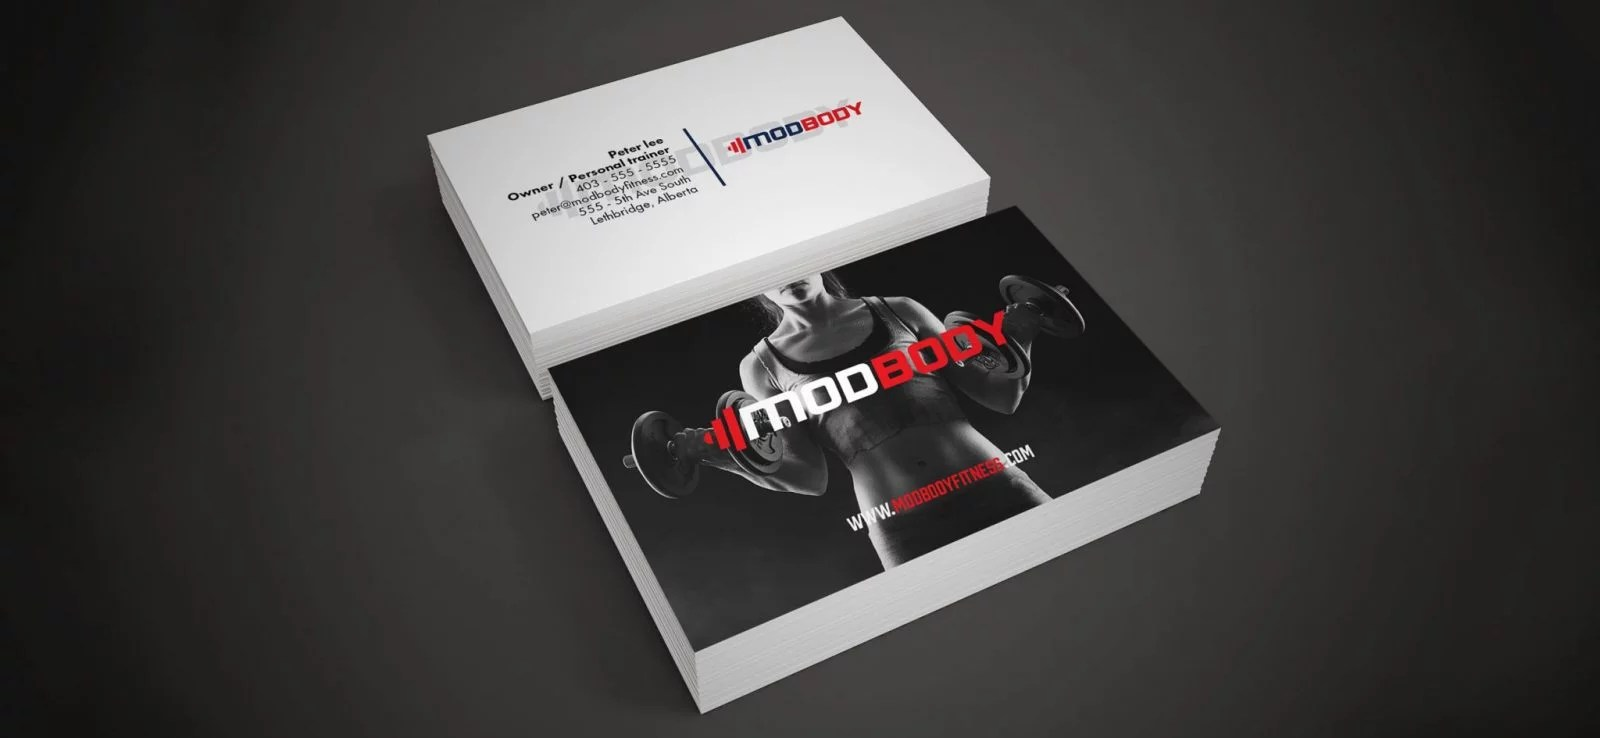 ModBody - Business Card Design - Lethbridge Alberta